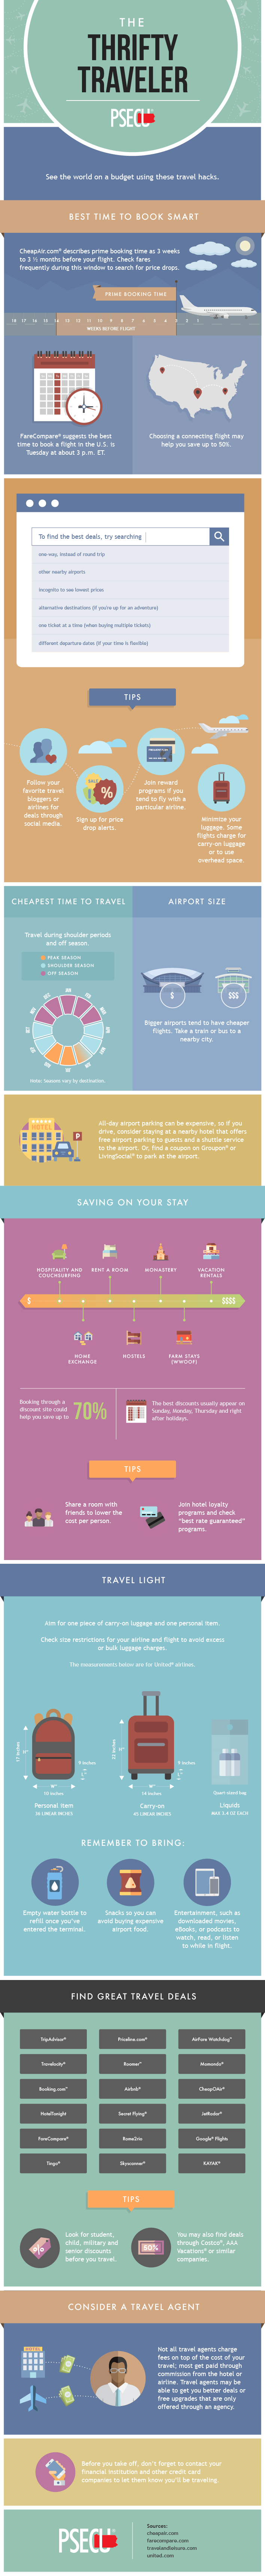 How to Be a Thrifty Traveler - Infographic